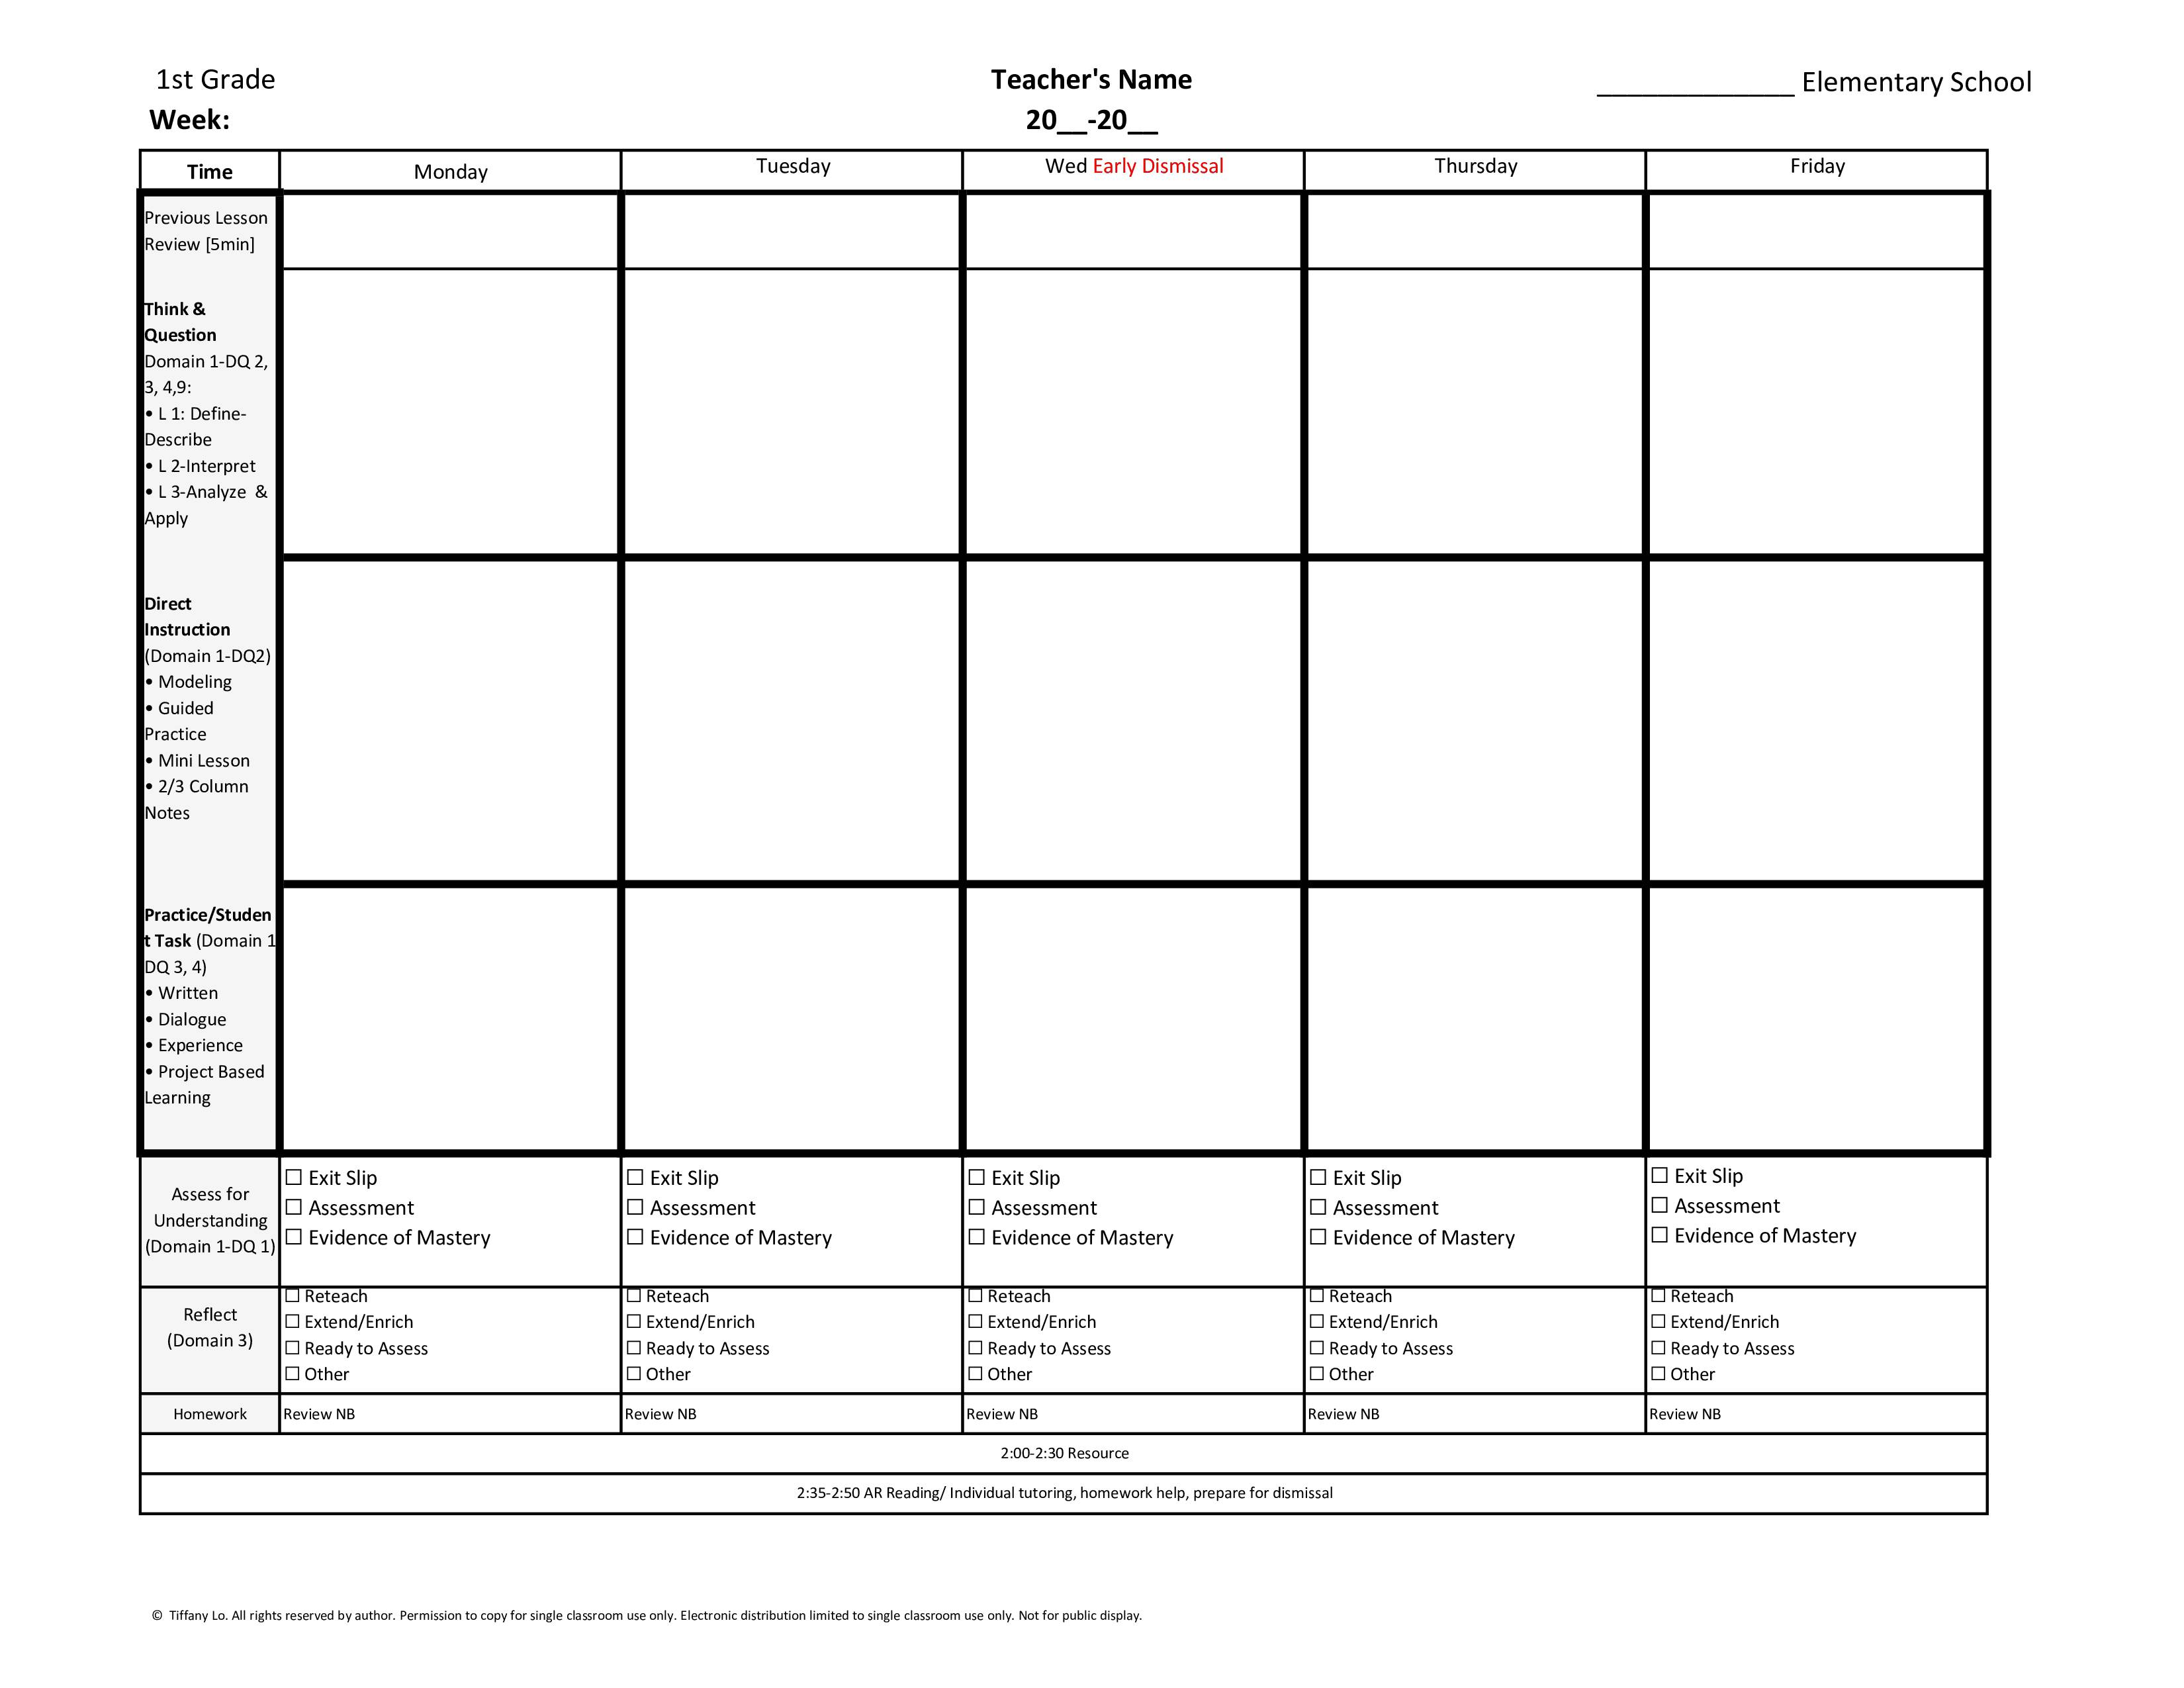 1st First Grade Common Core Weekly Lesson Plan Template W